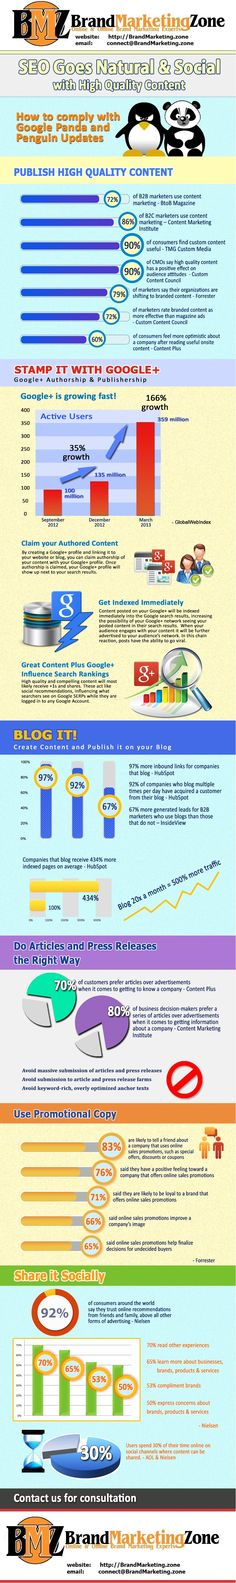 SEO Goes Natural & Social with High Quality Content - Brand Marketing Zone Infographic